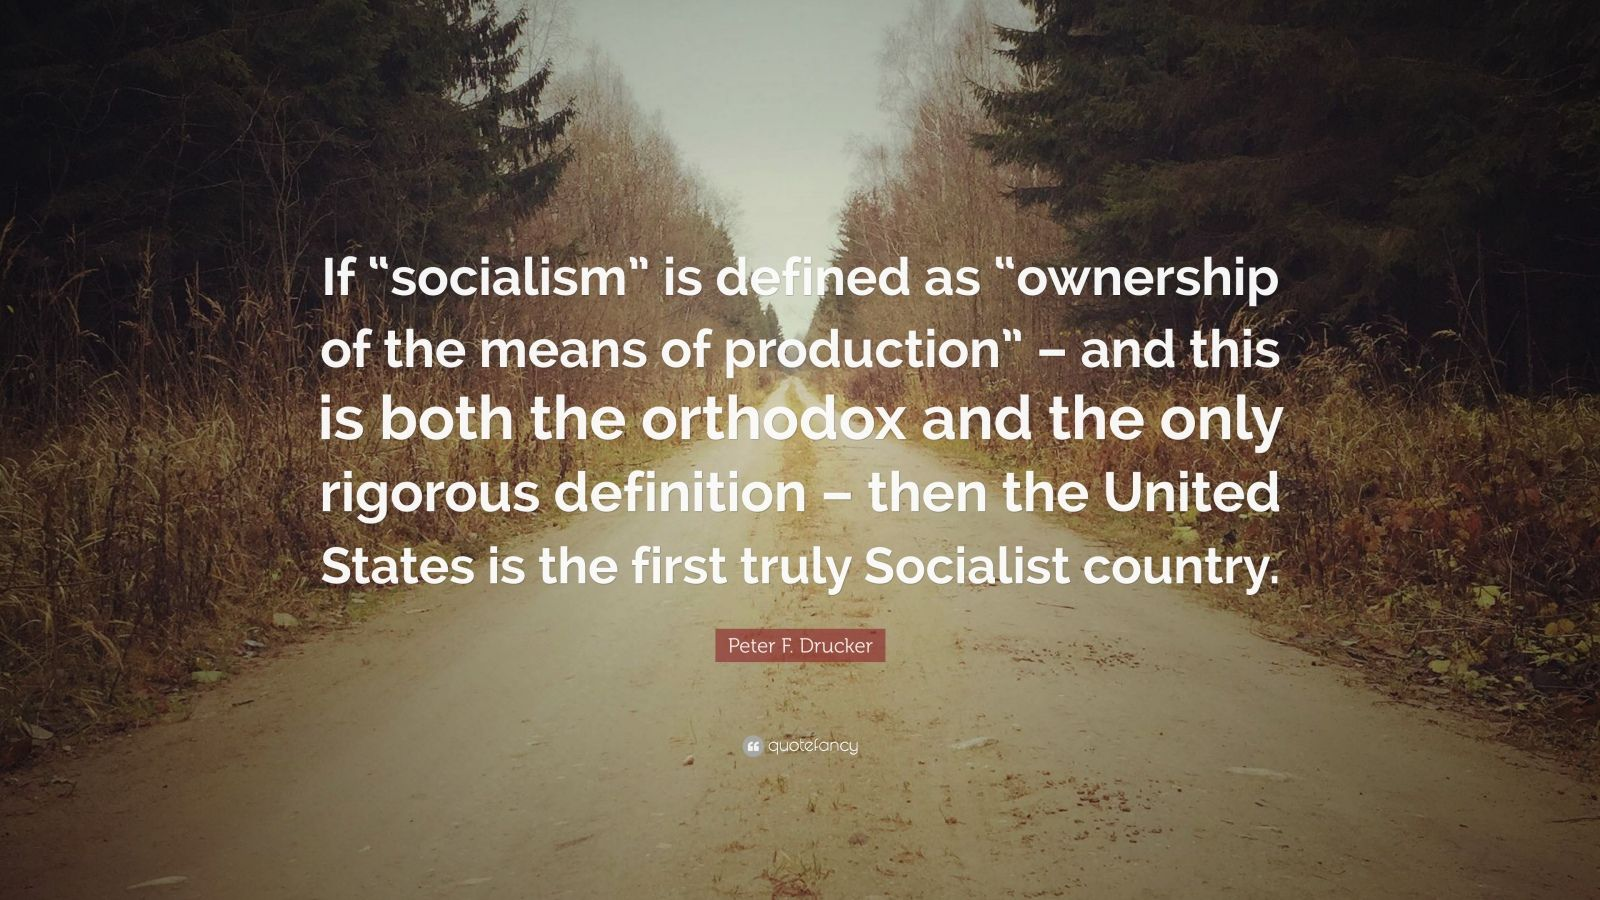 """Peter F. Drucker Quote: """"If """"socialism"""" is defined as """"ownership of the means of production"""" – and this is both the orthodox and the only rigorous definition – then the United States is the first truly Socialist country."""""""